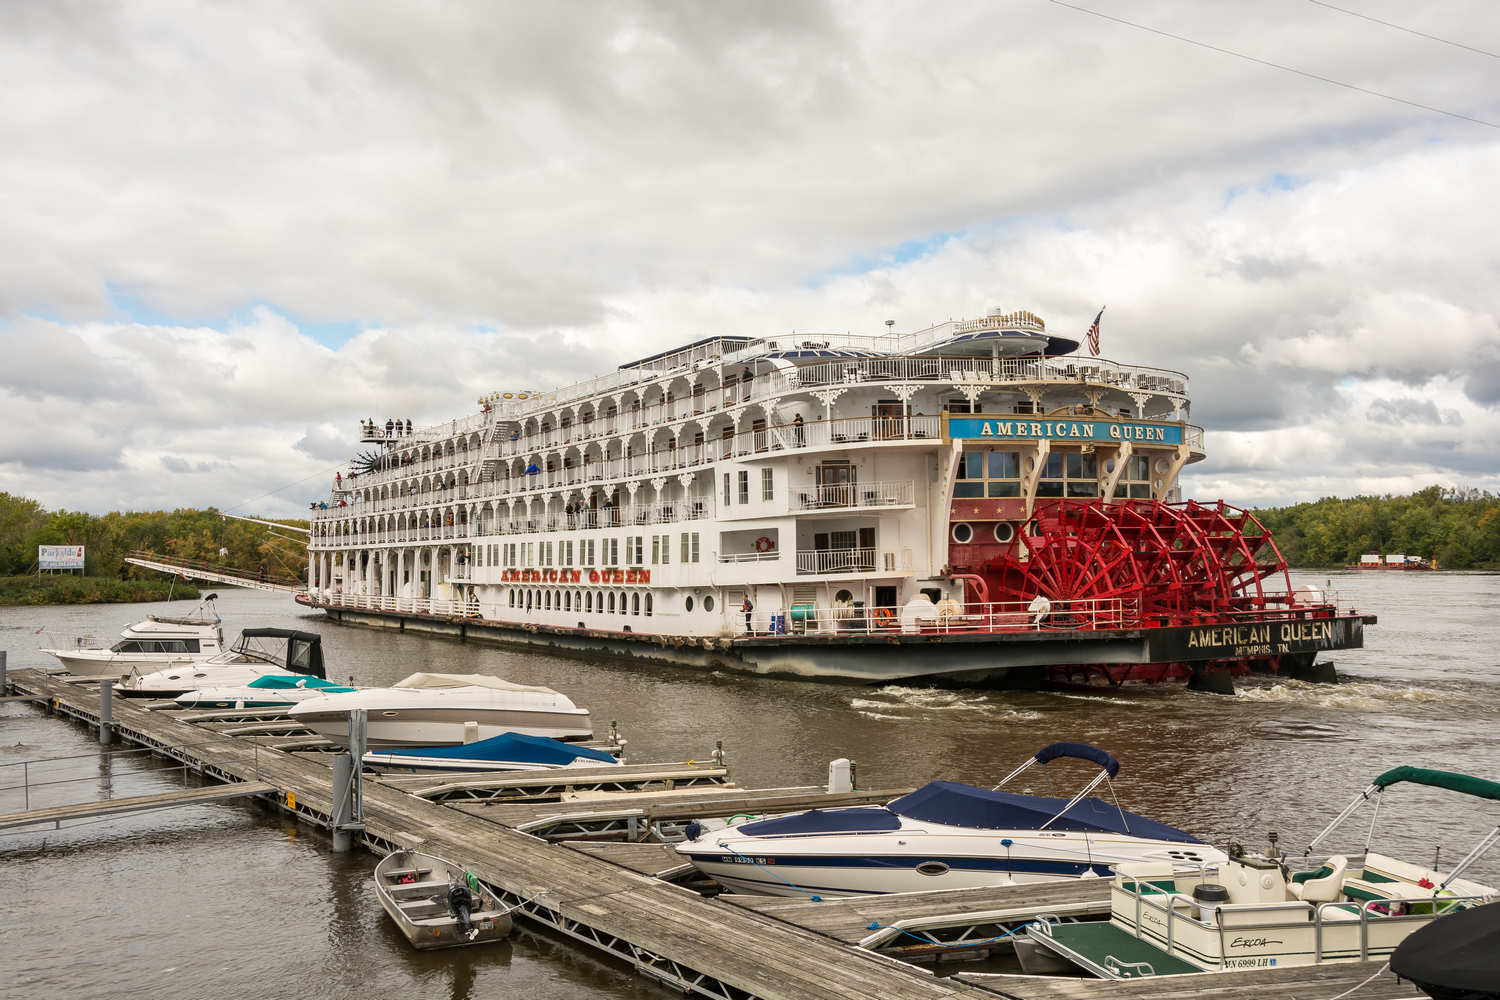 American Queen, the largest steamboat ever built